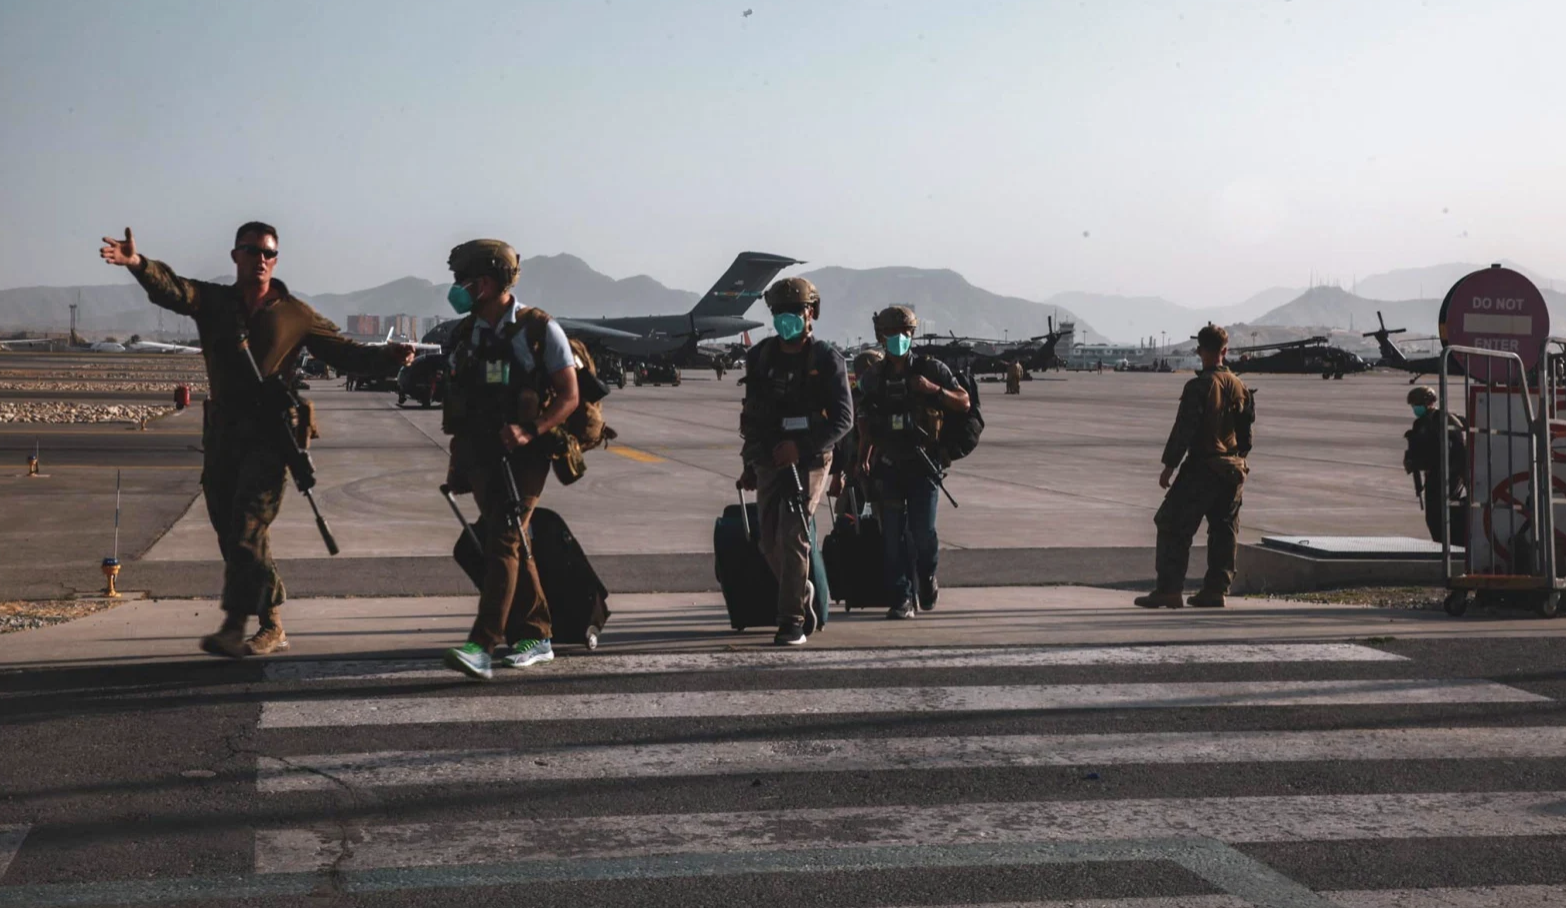 A U.S. Marine assigned to the 24th Marine Expeditionary Unit escorts Department of State personnel to be processed for evacuation at Hamid Karzai International Airport, Kabul, Afghanistan, August 15, 2021. (US Navy/Central Command Public Affairs/Sergeant Isaiah Campbell/Handout via Reuters)